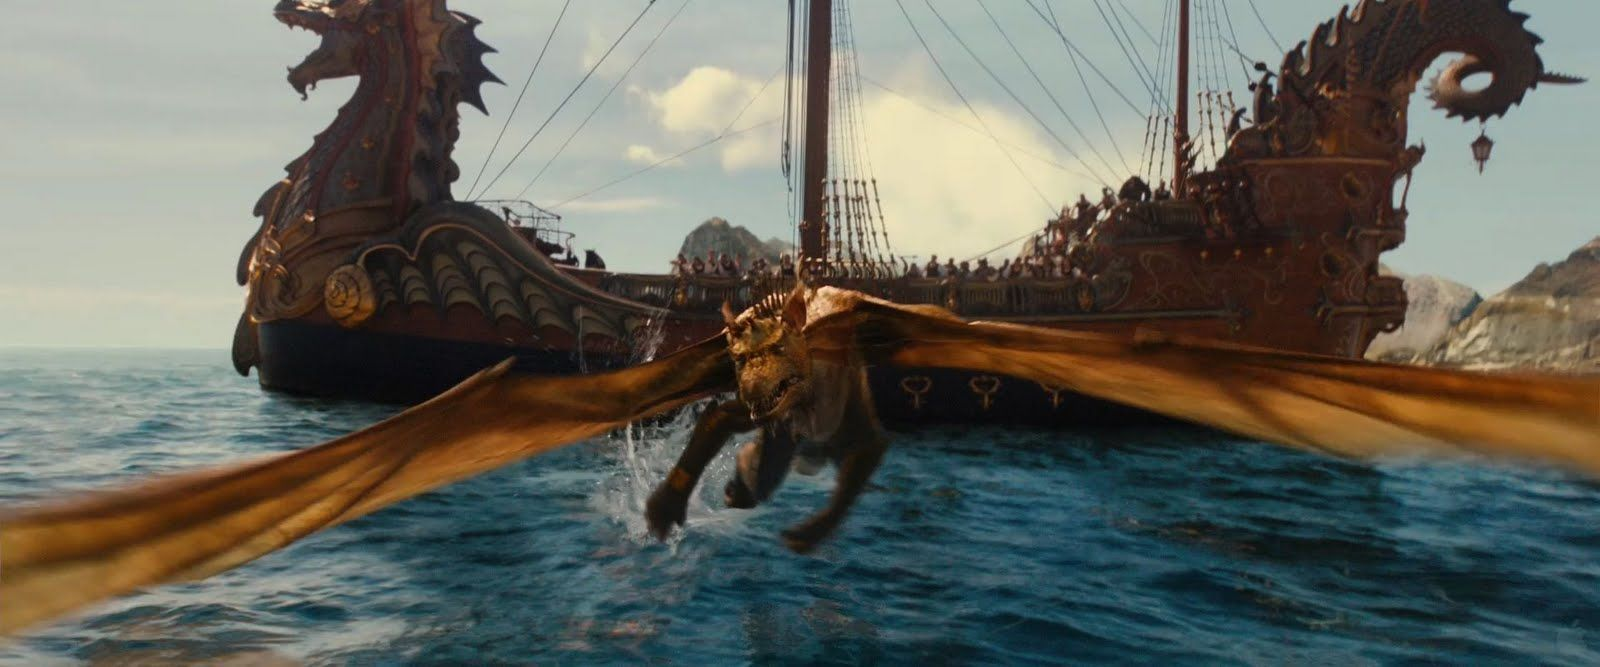 Dawn Treader And Dragon With Images Chronicles Of Narnia